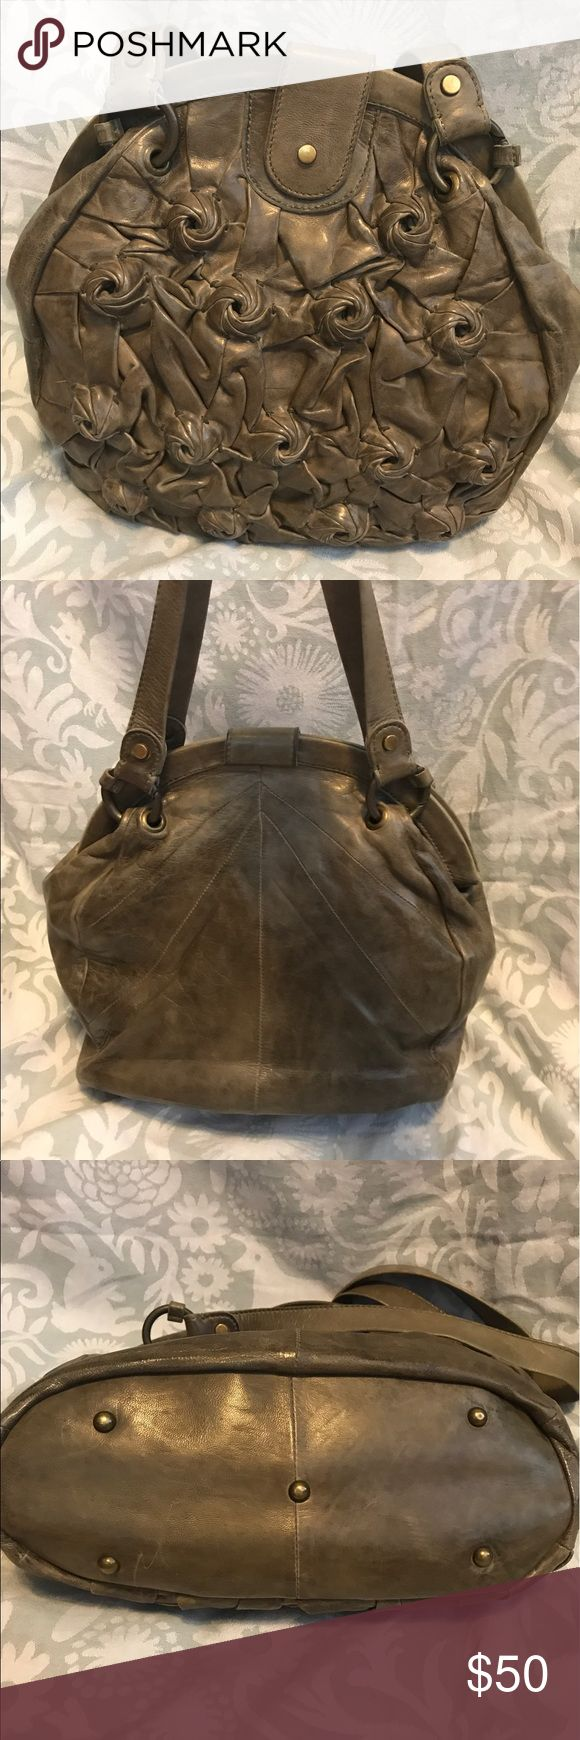 Anthropologie Henny Penny Leather Handbag Leather roses adorn the front of this gorgeous handbag from Anthropologie. Interior is in fabulous shape. I'm reposting! Anthropologie Bags Shoulder Bags